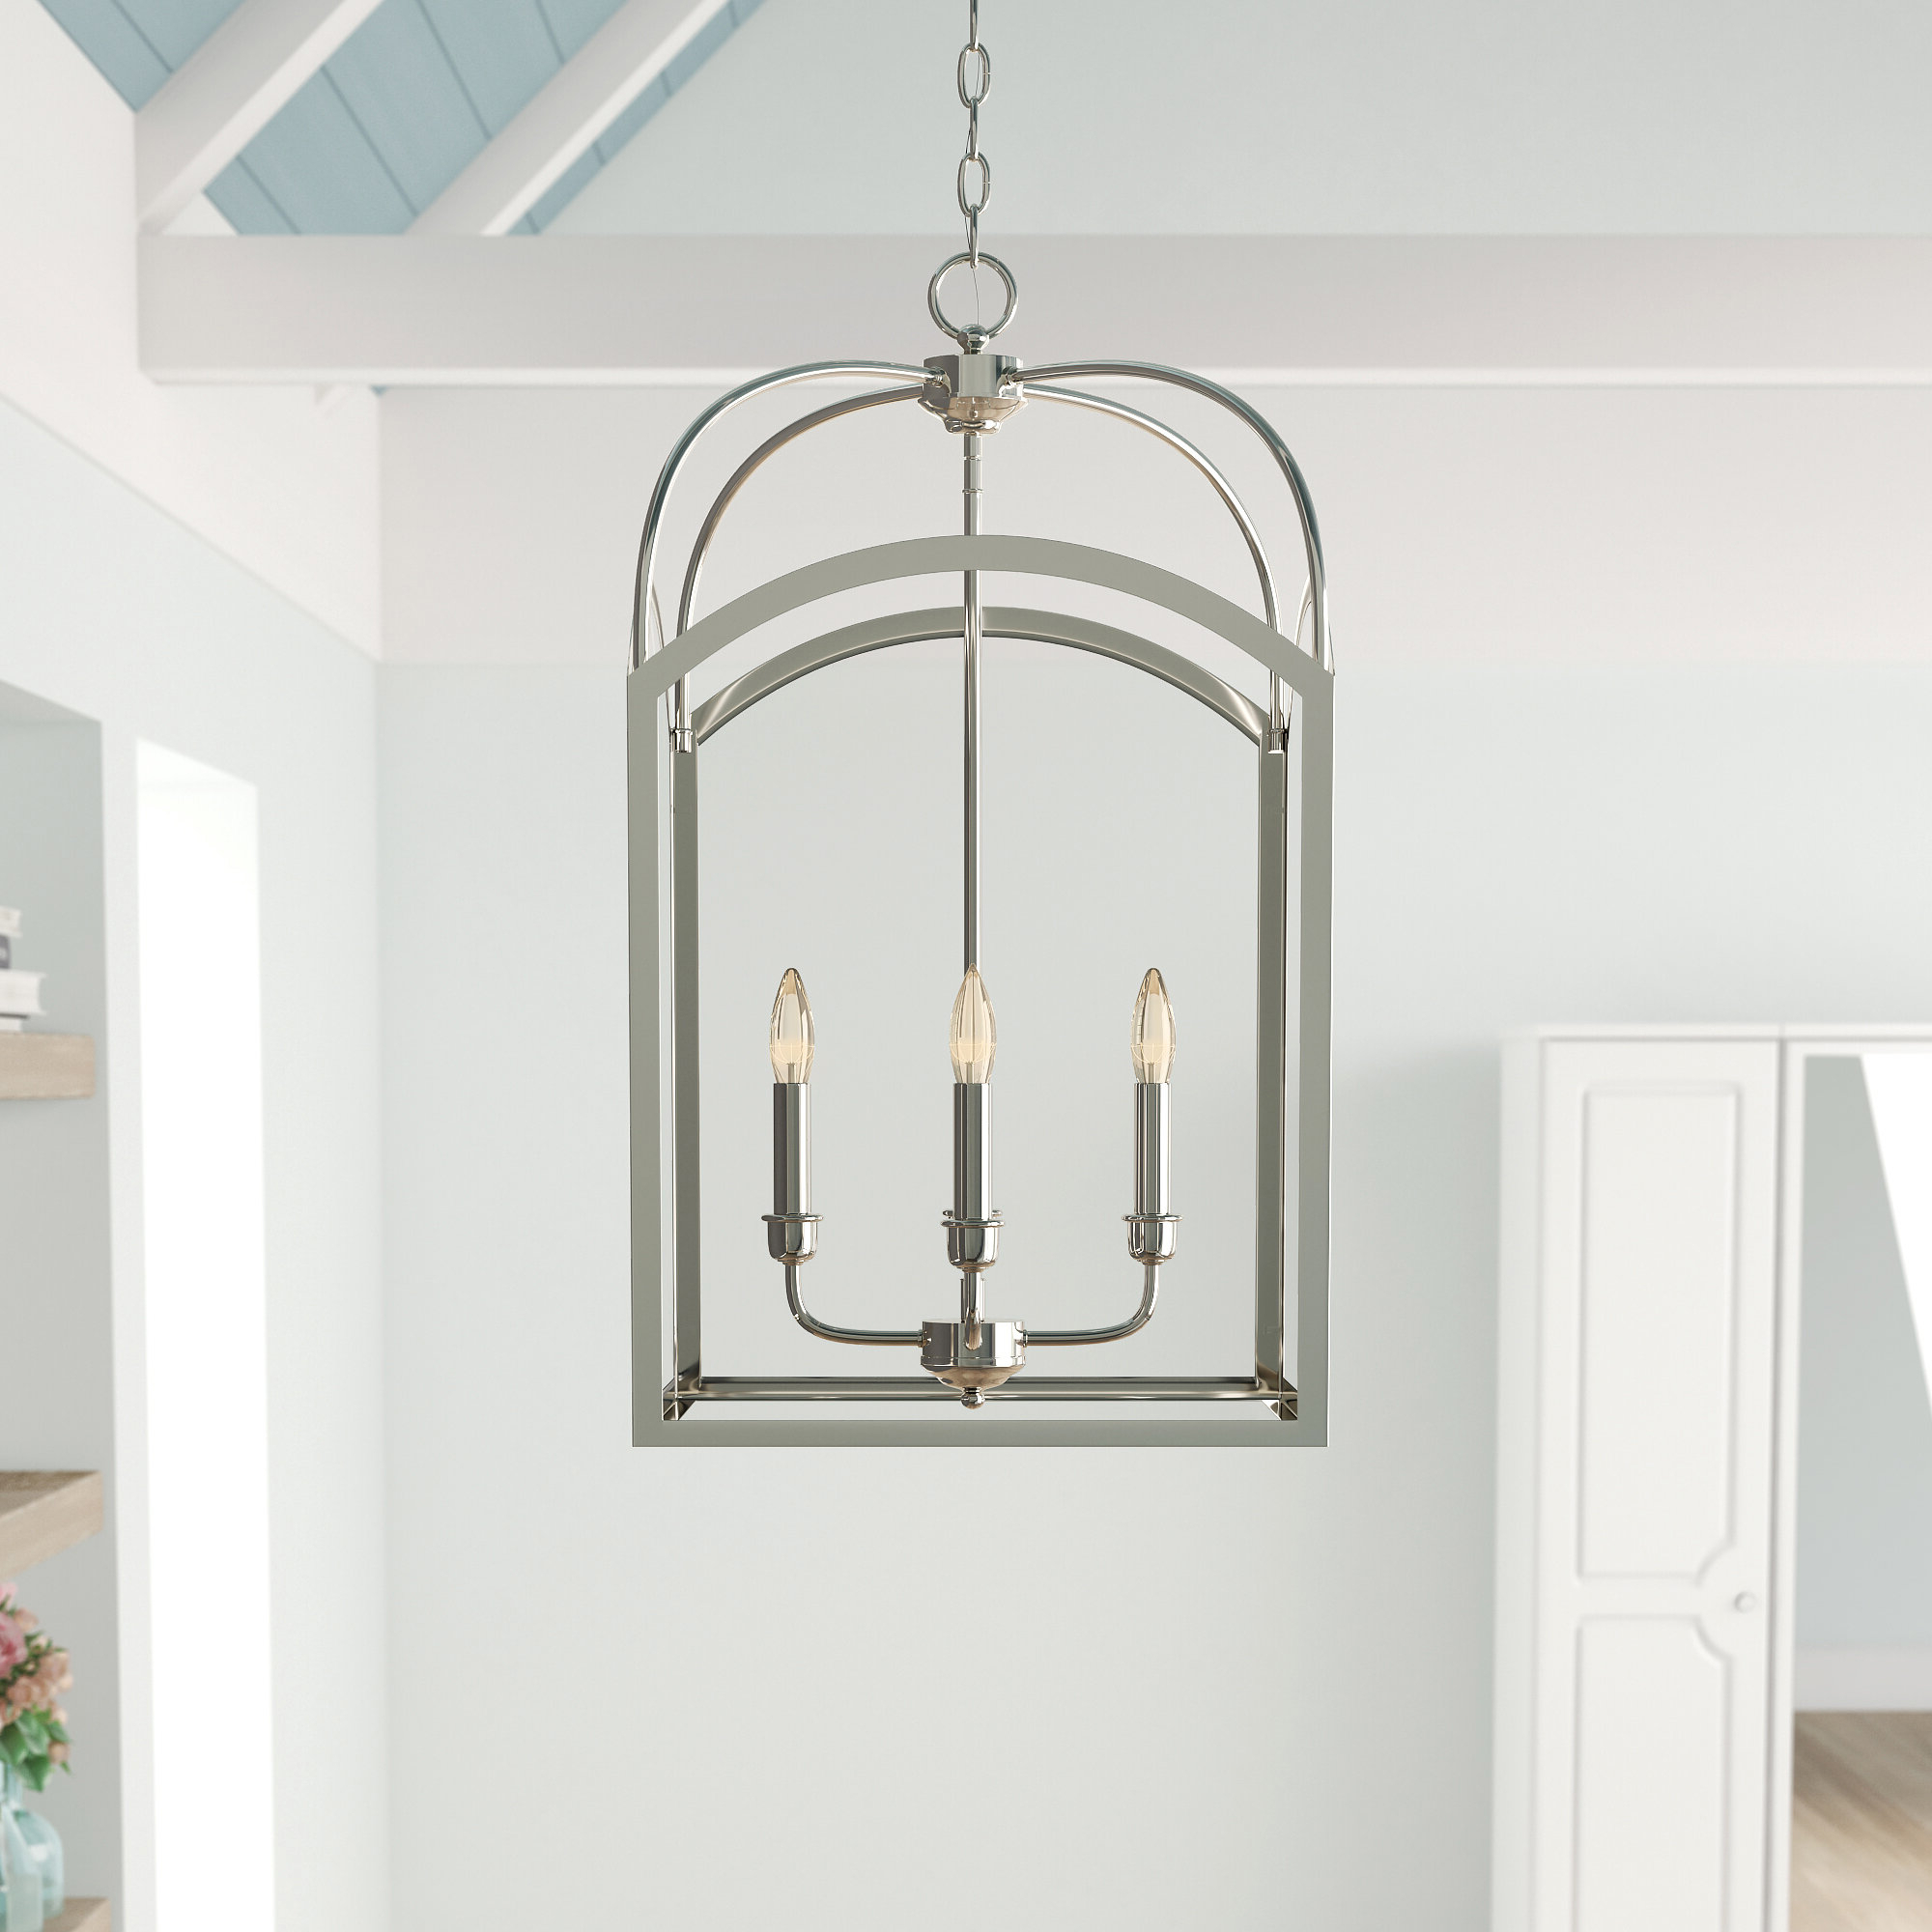 Mount Airy 4 Light Lantern Geometric Pendant With Most Recent Kierra 4 Light Unique / Statement Chandeliers (View 16 of 25)